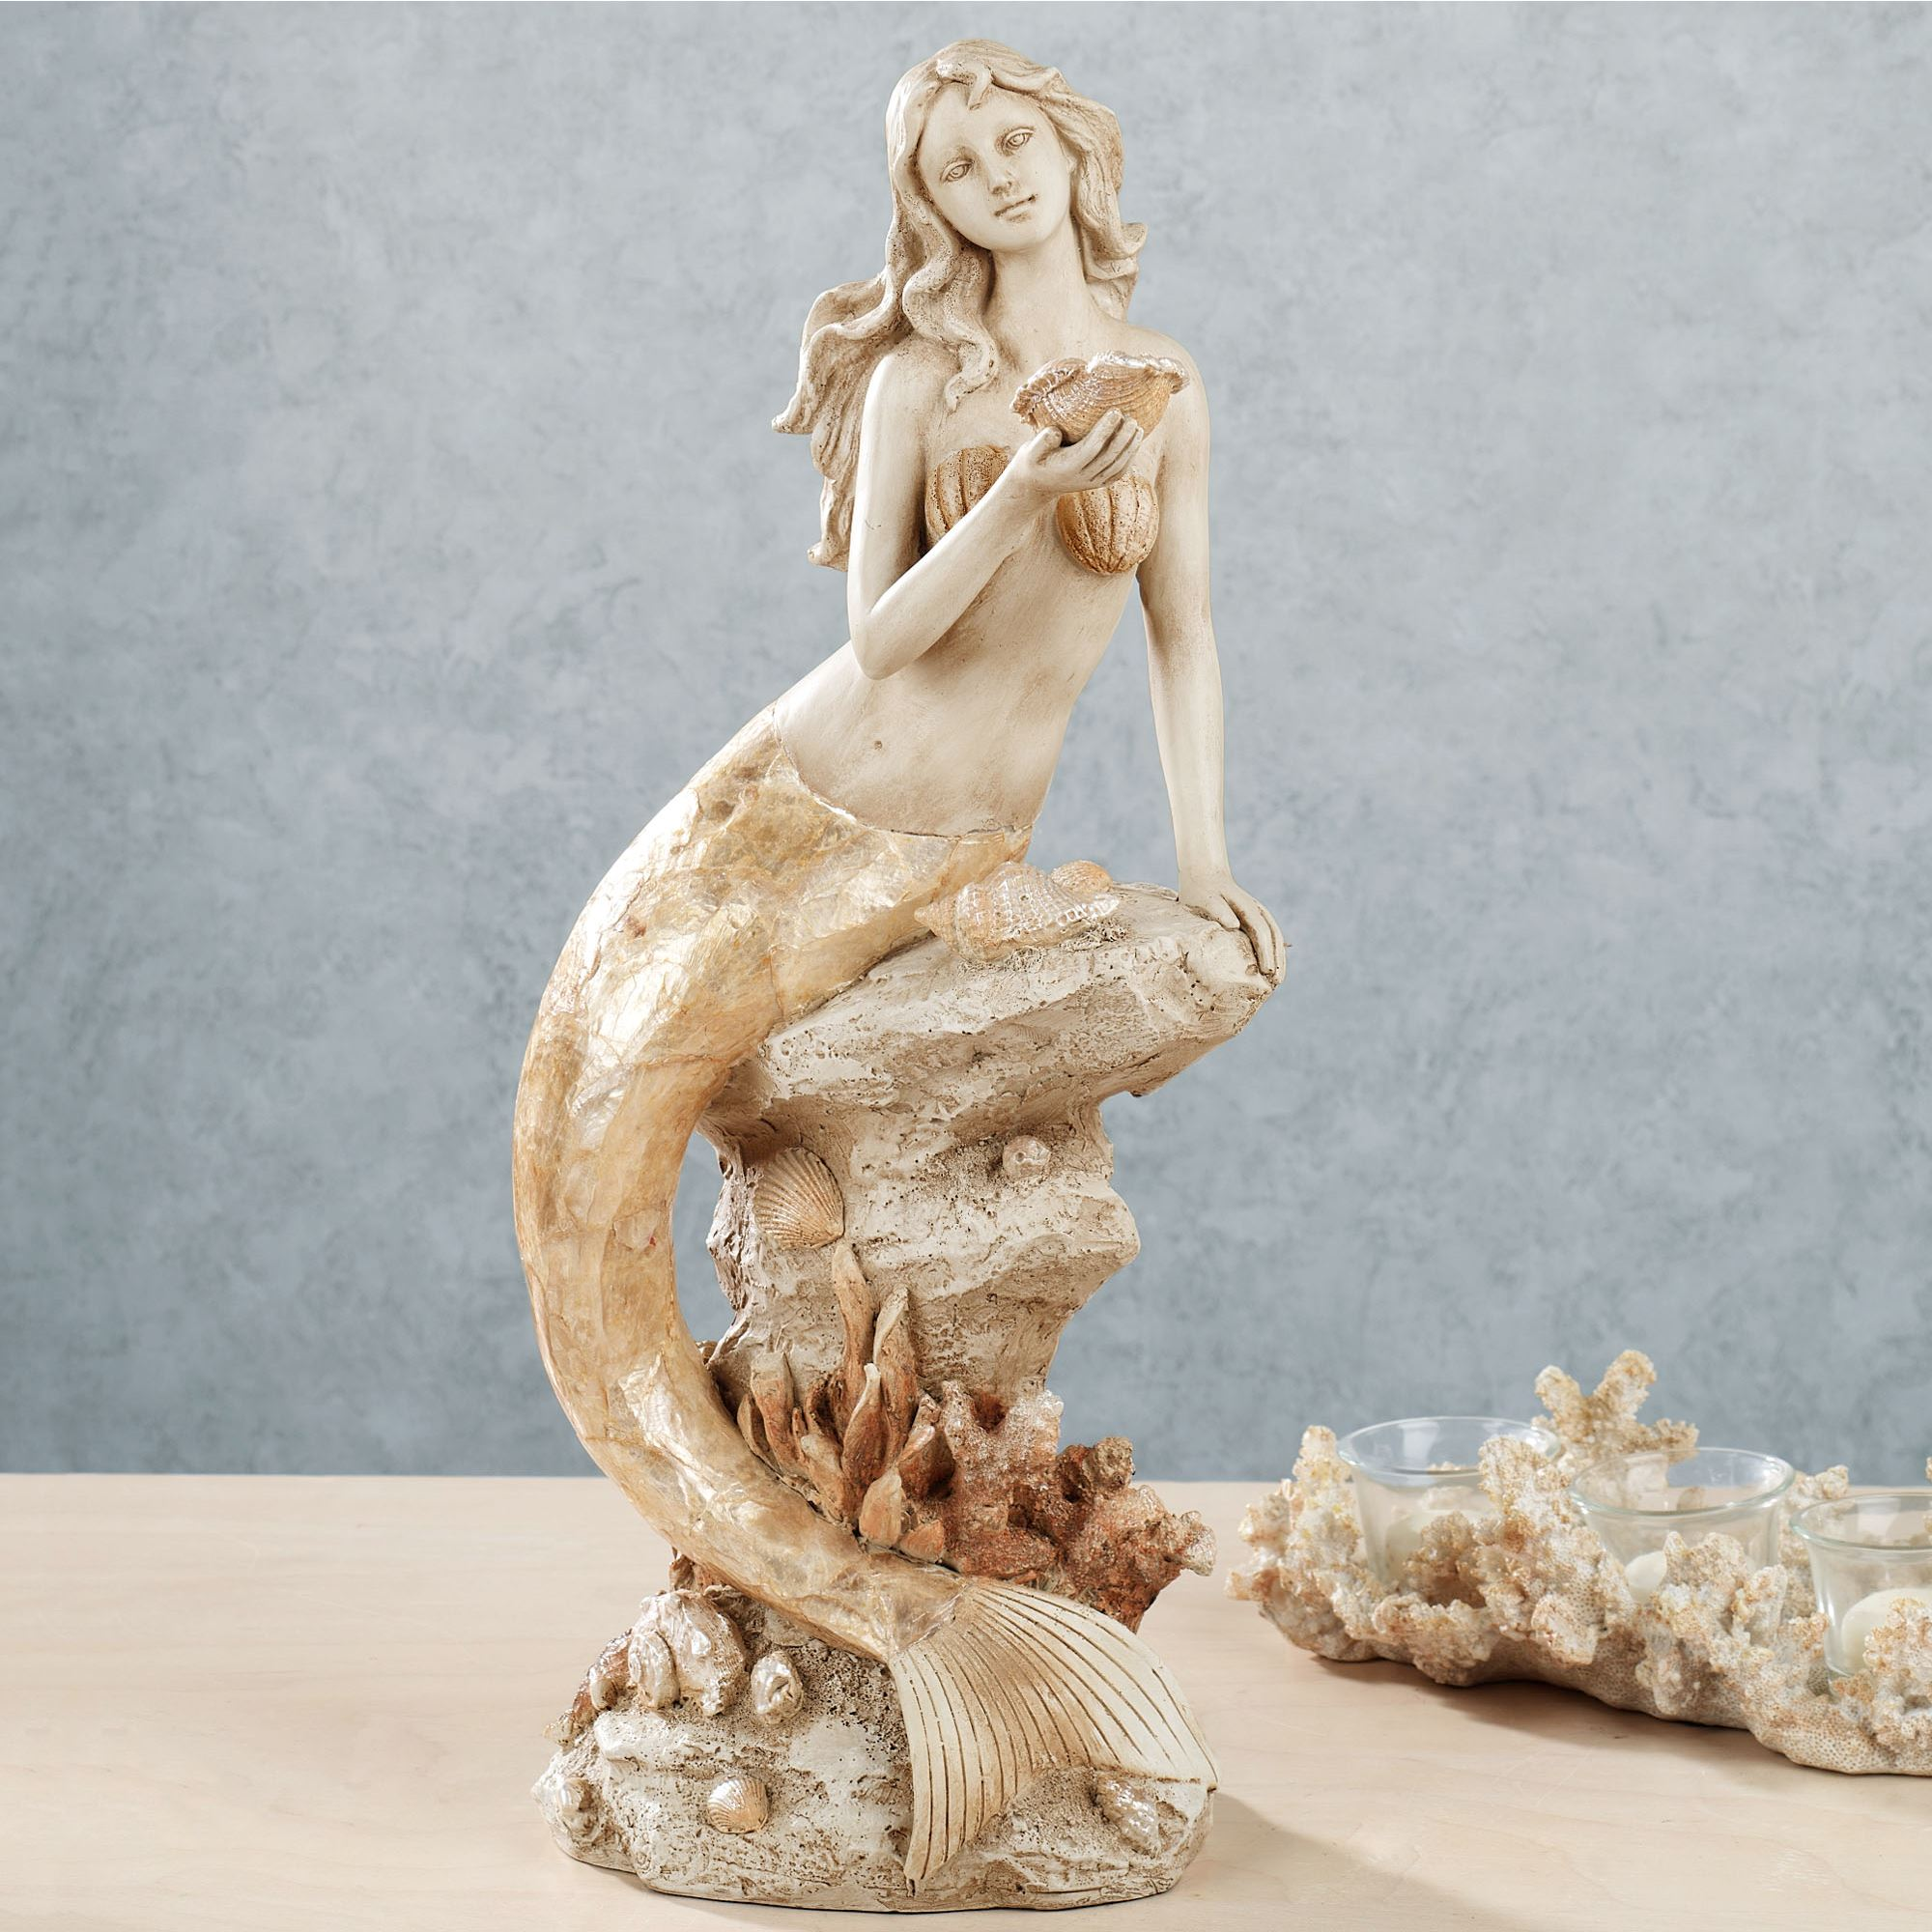 Seashell Home Decor Moonlight Mermaid Table Sculpture